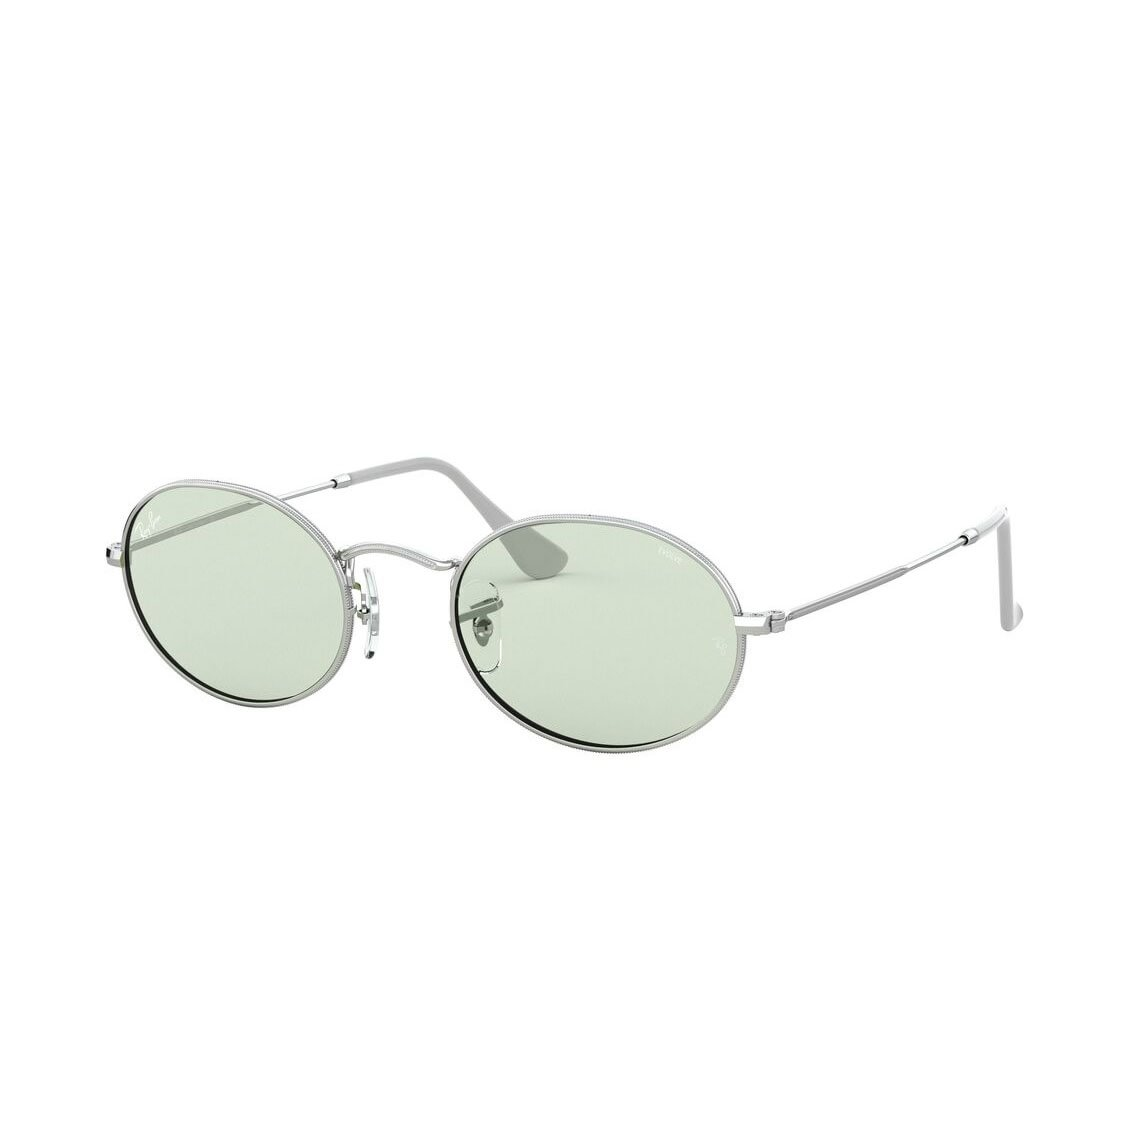 Ray-Ban Oval Solid Evolve RB3547 003/T1 5421